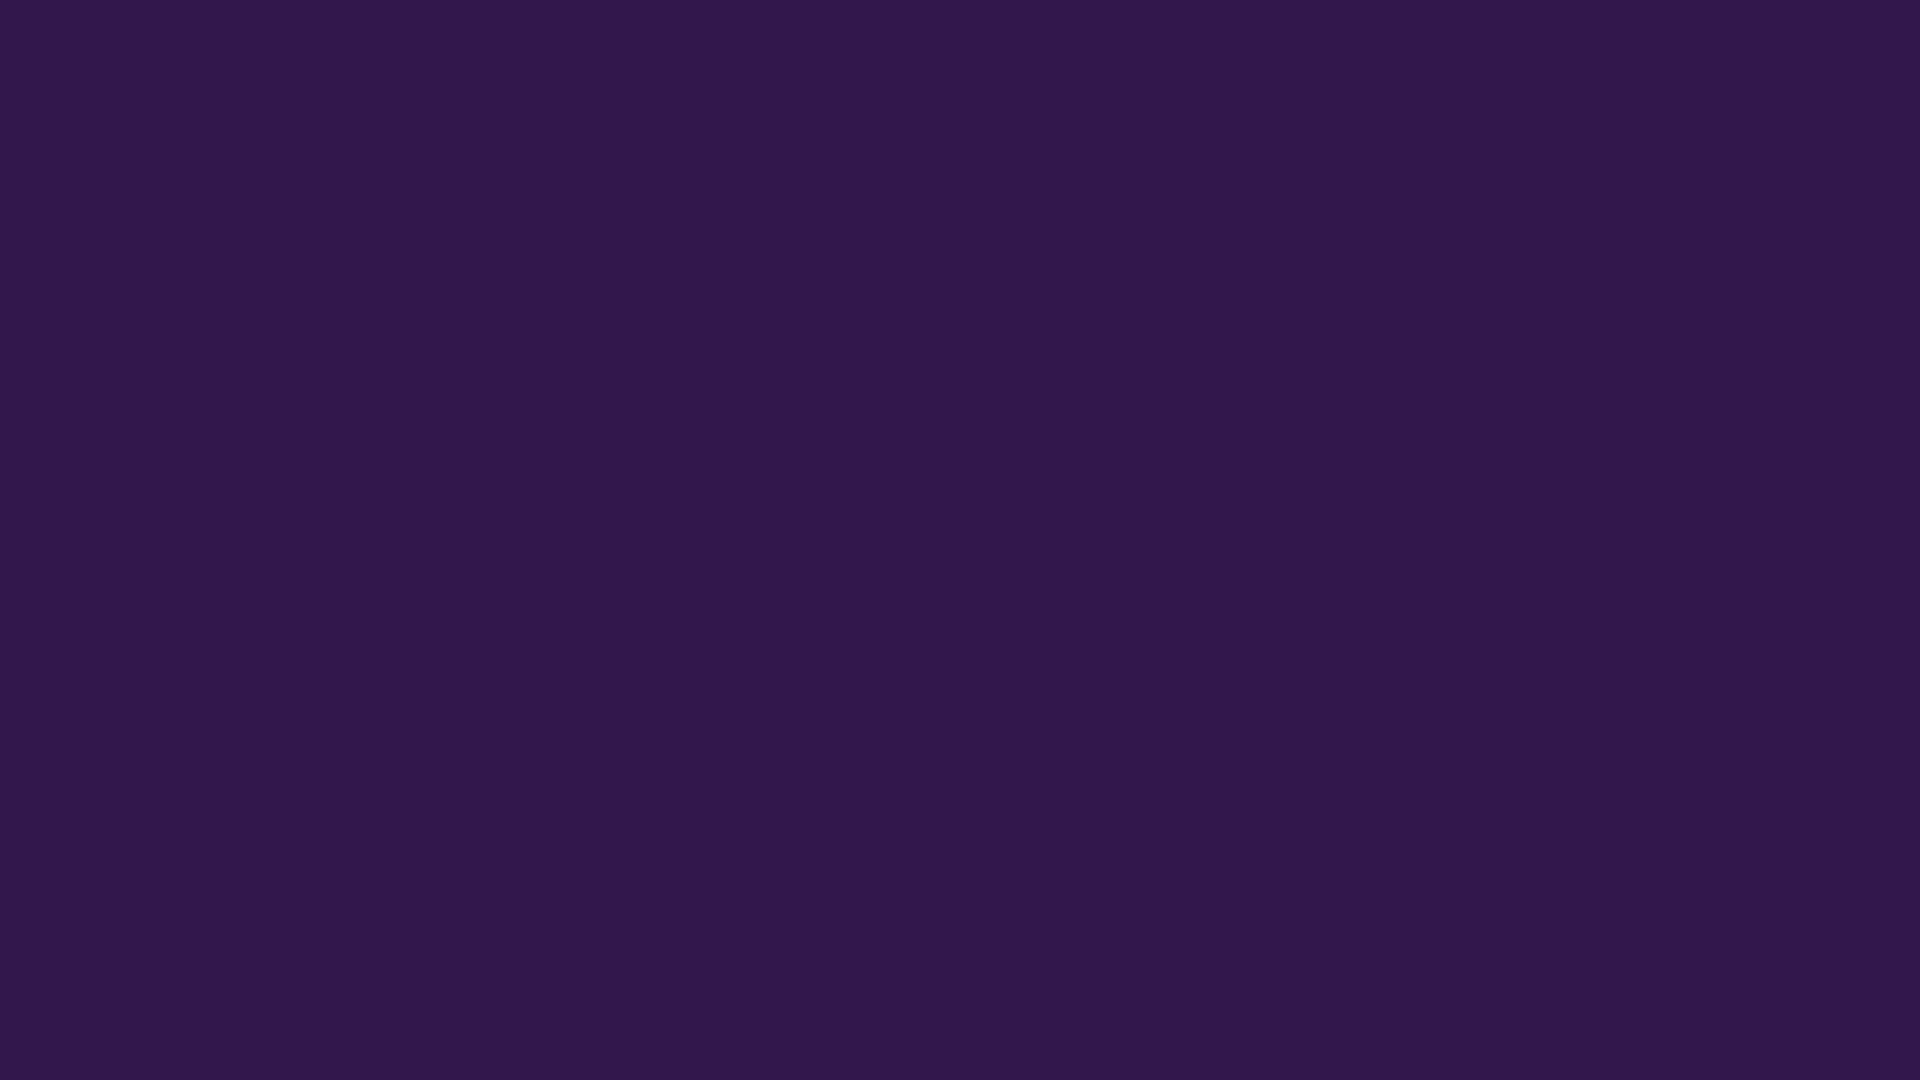 1920x1080 Russian Violet Solid Color Background